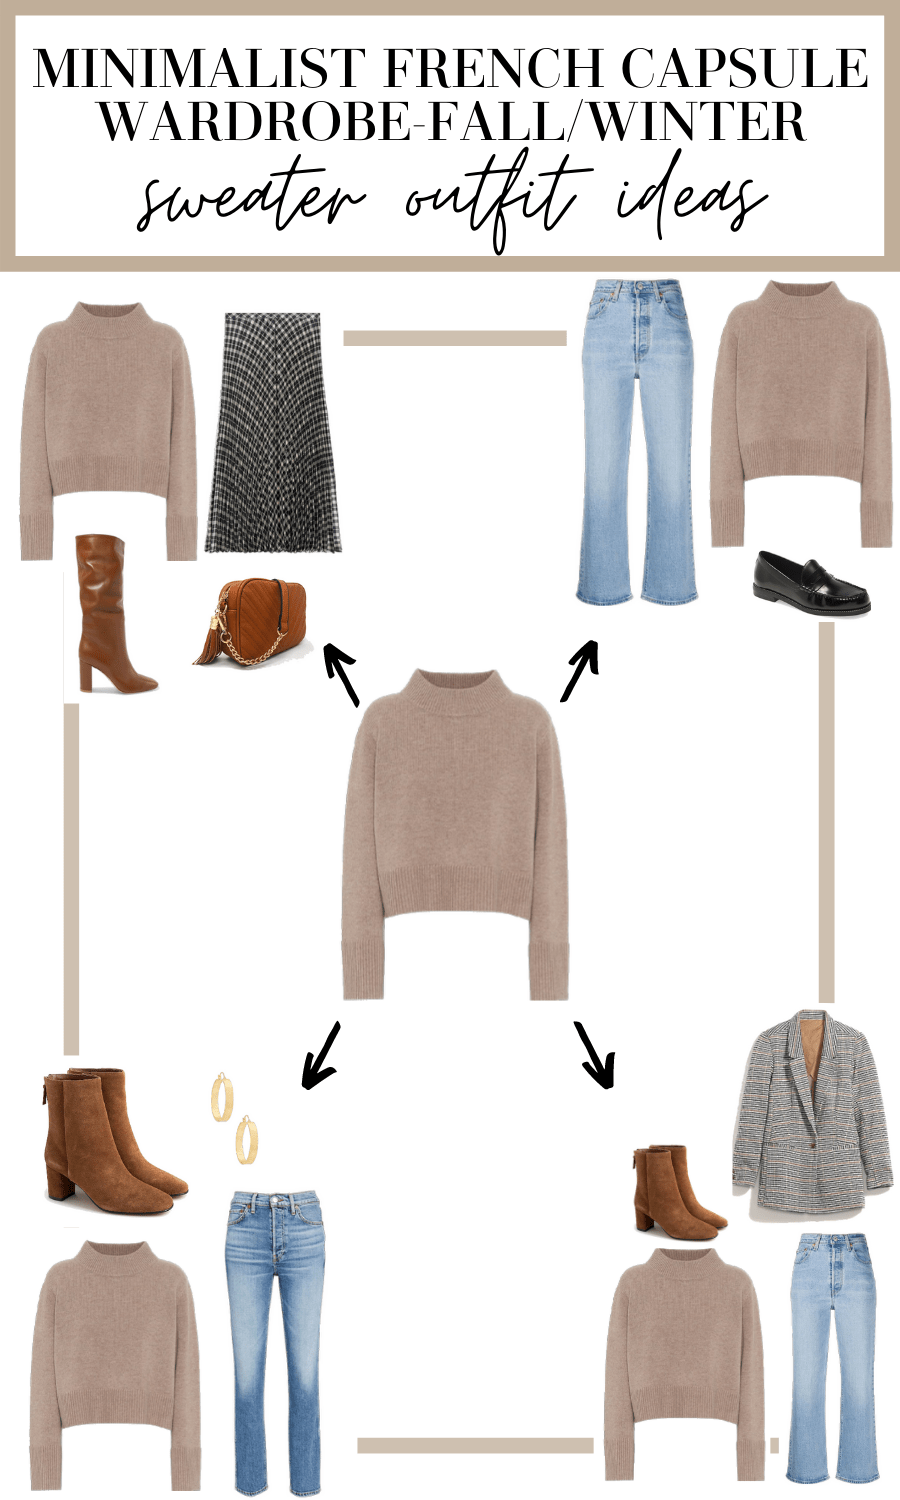 sweater outfit ideas